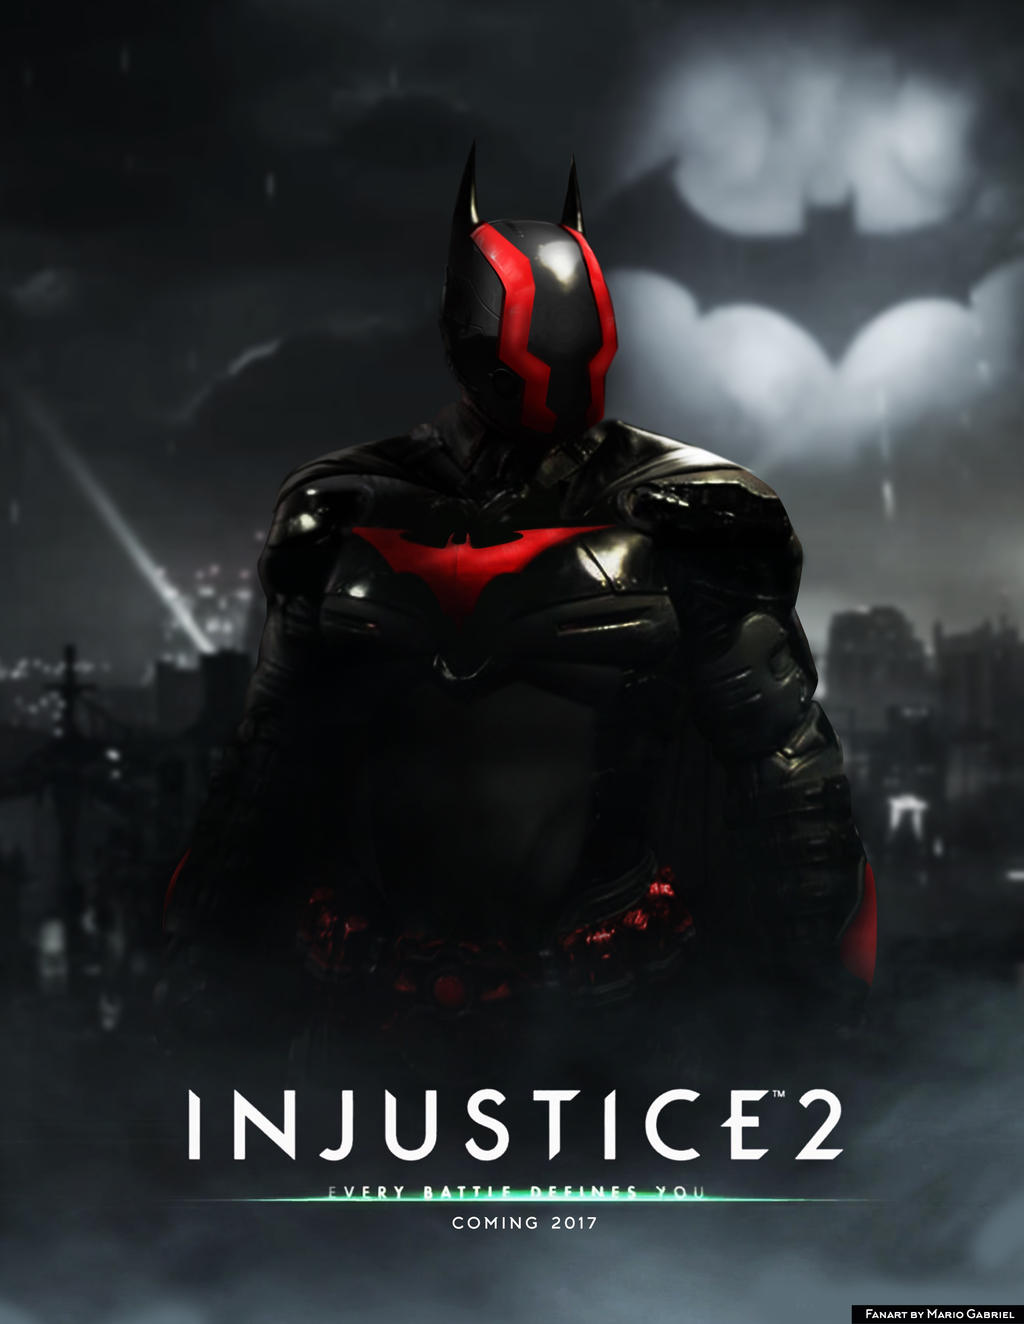 INJUSTICE 2 - Batman Fanart by MarioGagabriel on DeviantArt